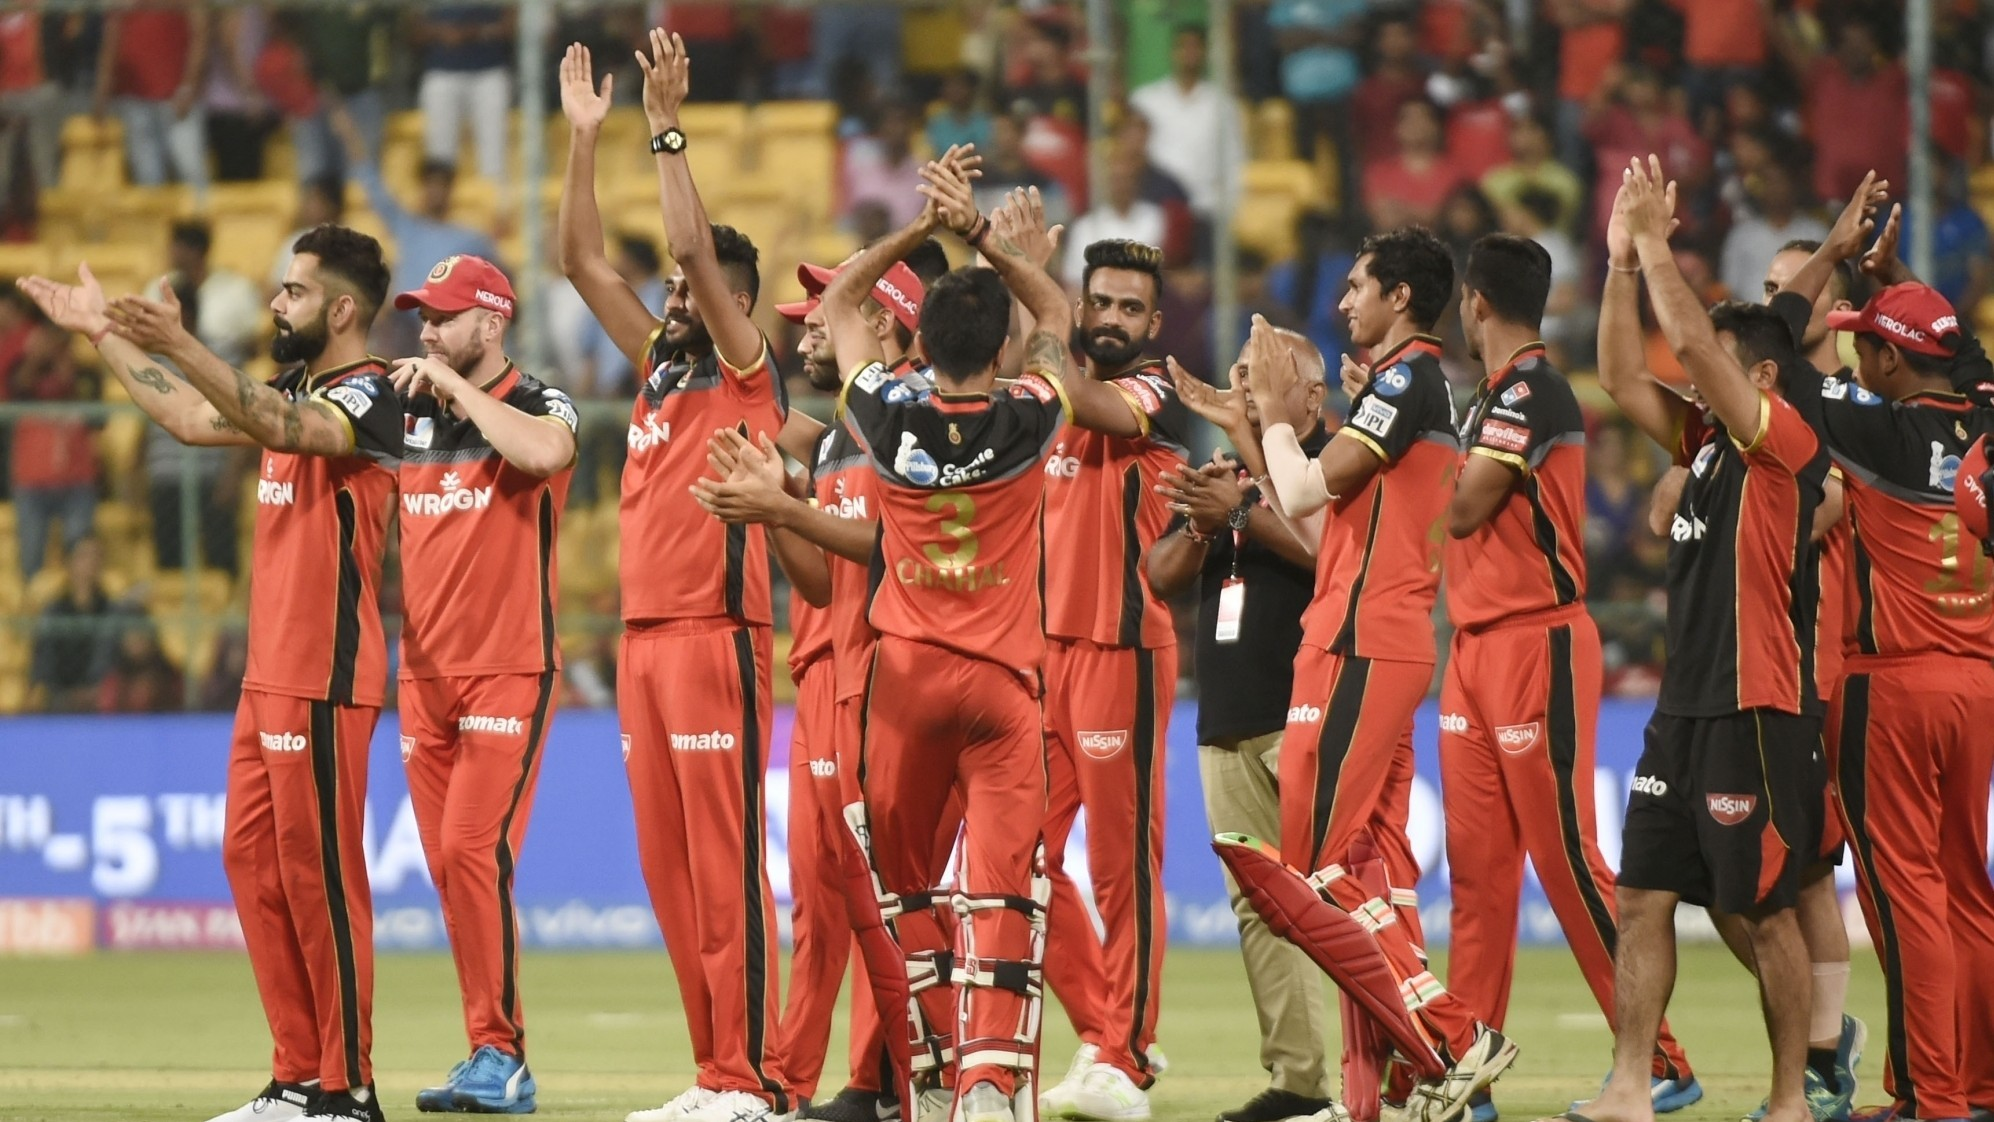 IPL 2020: Royal Challengers Bangalore – List of players released and retained